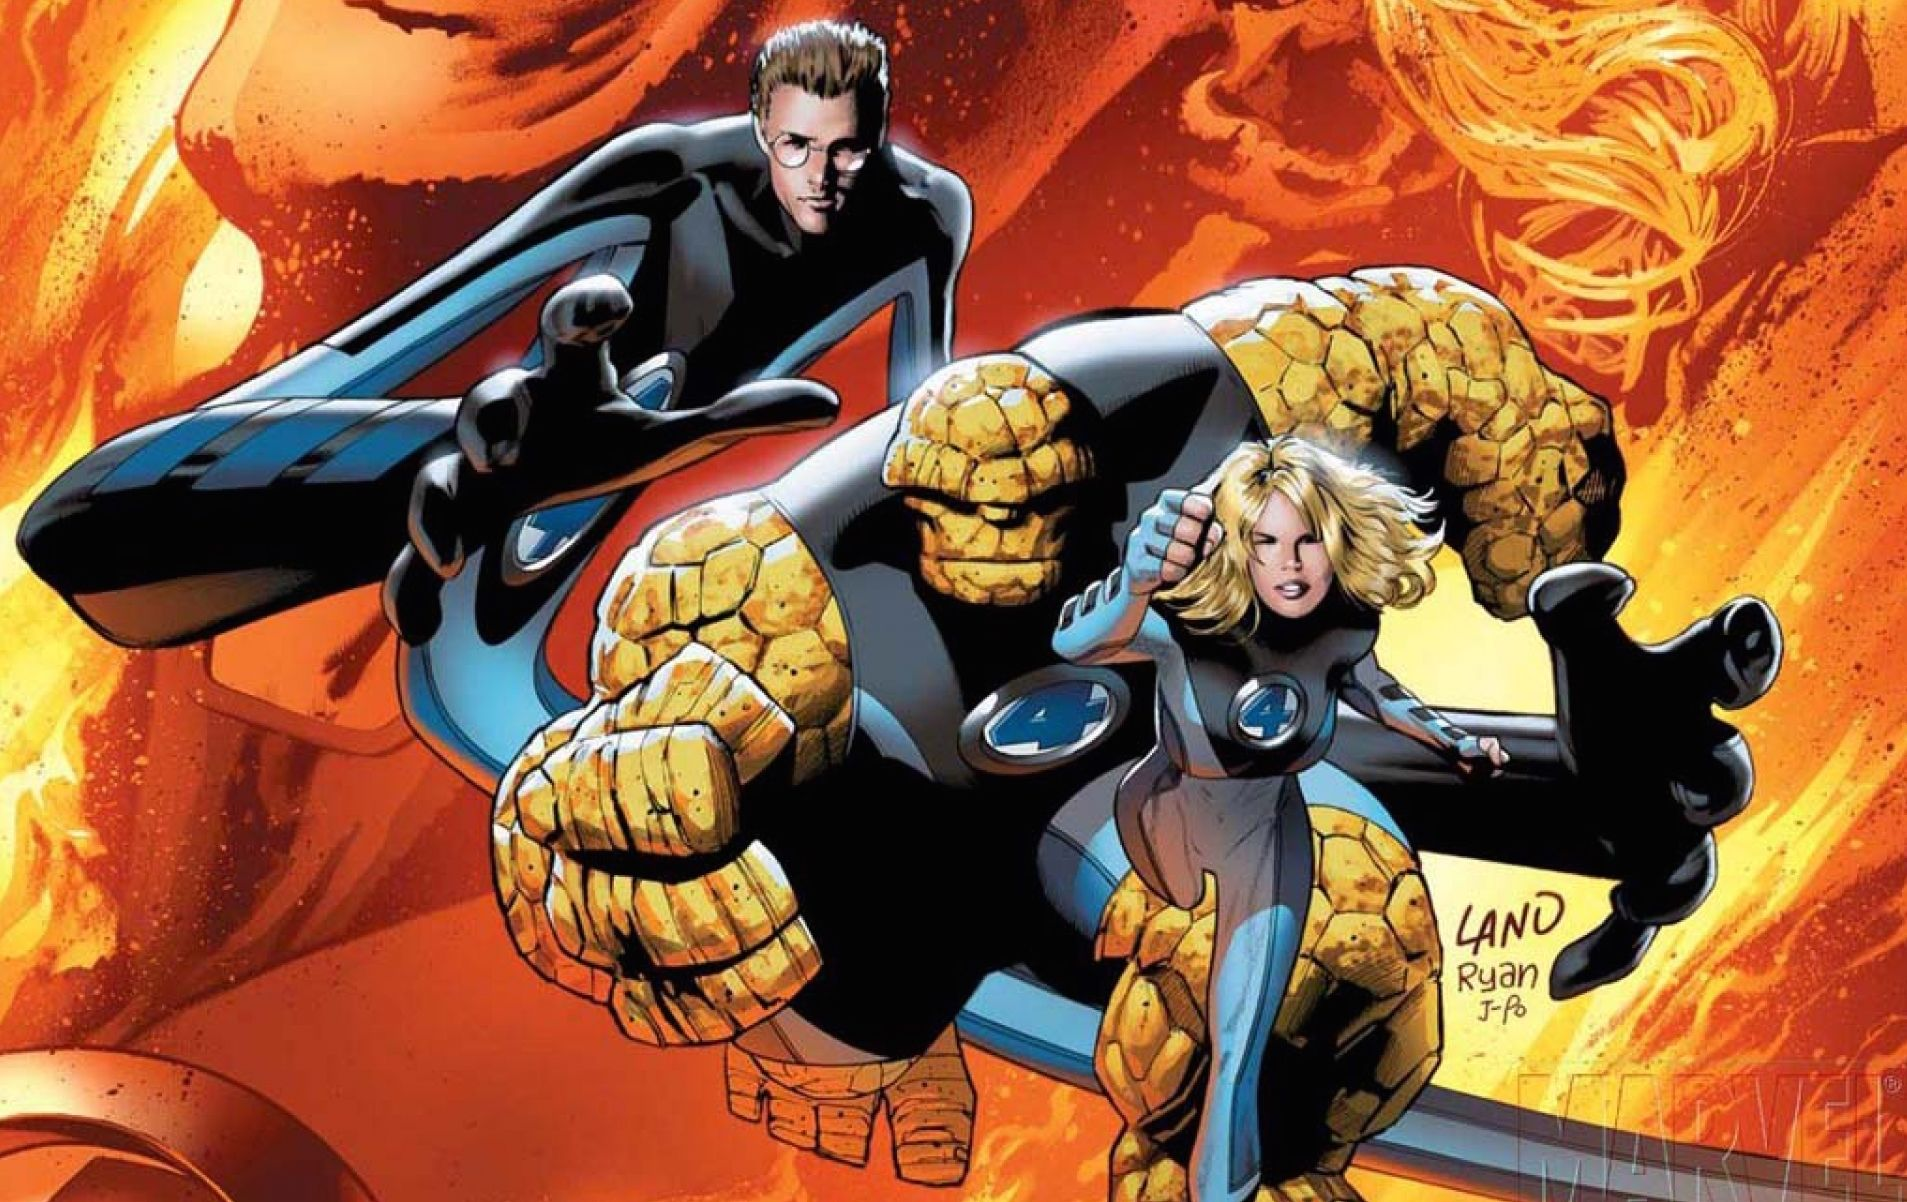 Fantastic Four Wallpaper Hd Fantastic Four Comics Marvel Comics Wallpaper Fantastic Four